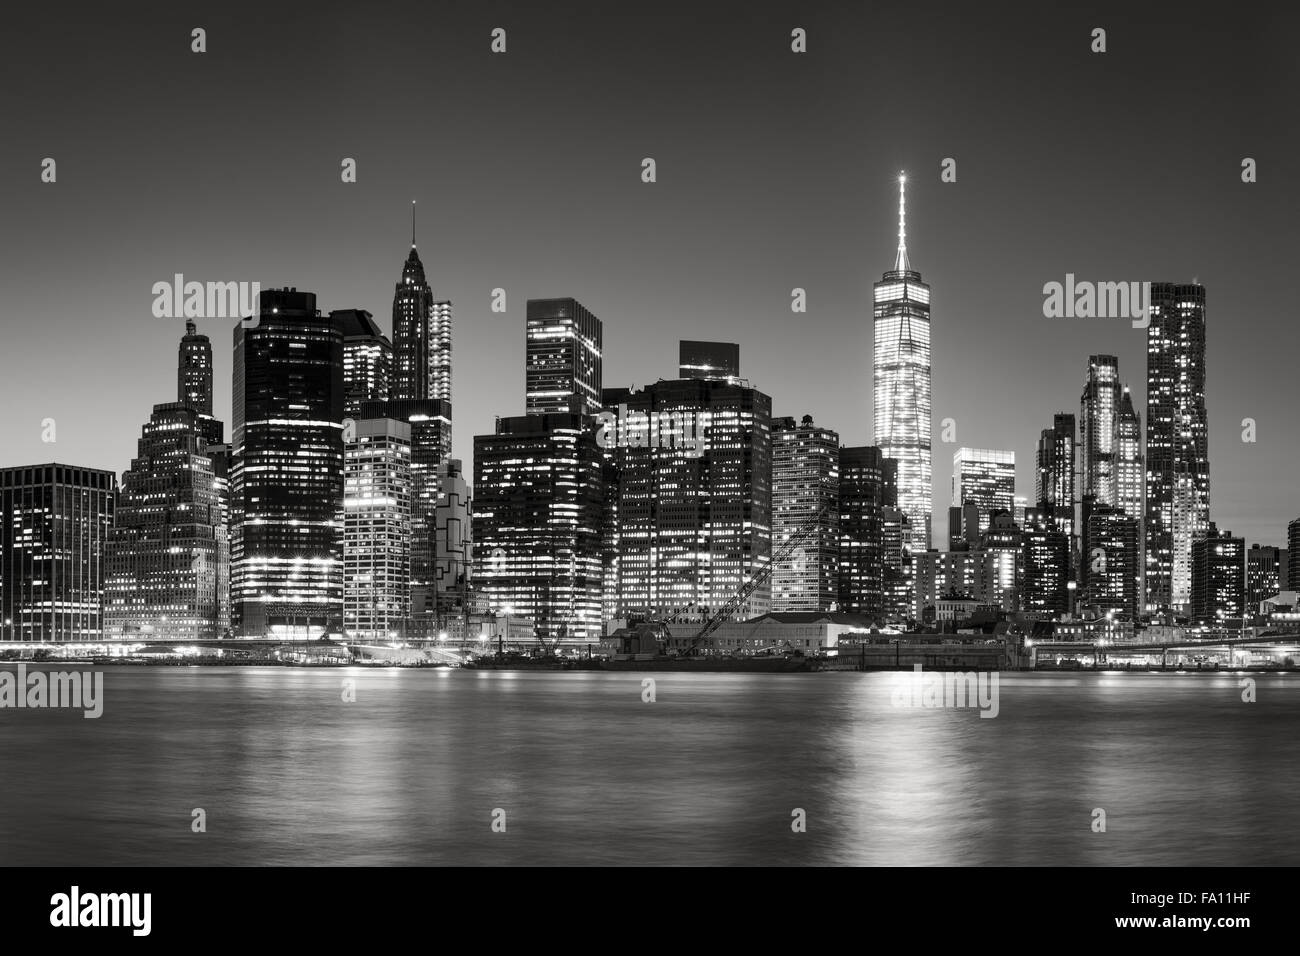 Black & White East River view of Financial District skyscrapers at dusk. Illuminated Lower Manhattan skyline, New Stock Photo